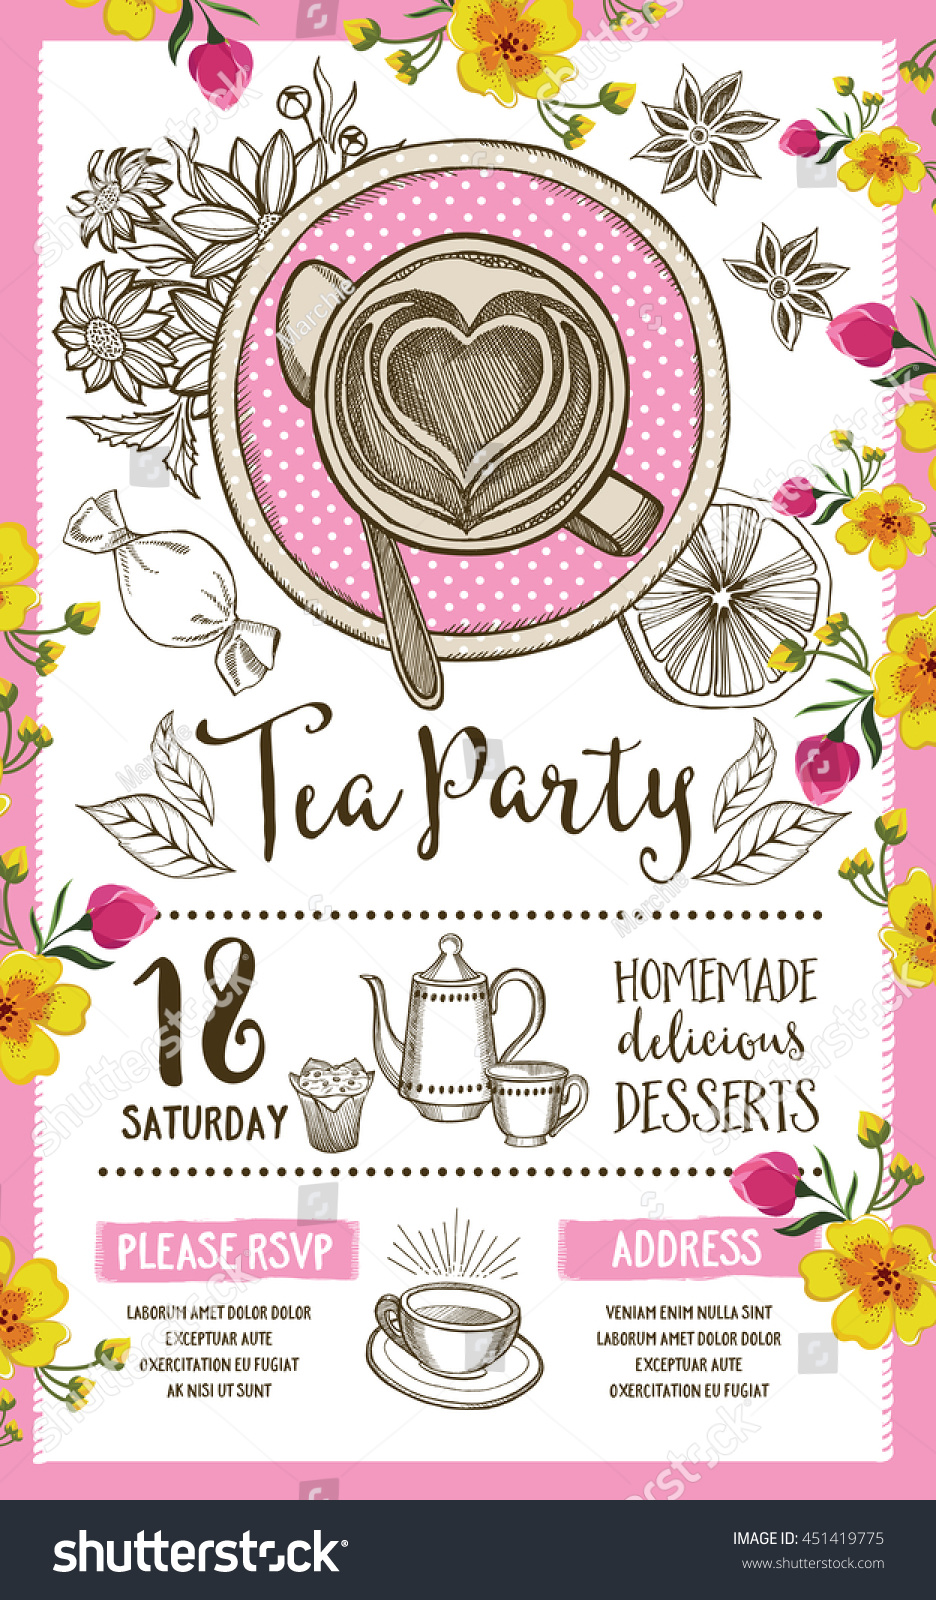 Tea party invitation template design vintage stock vector for Tea party menu template